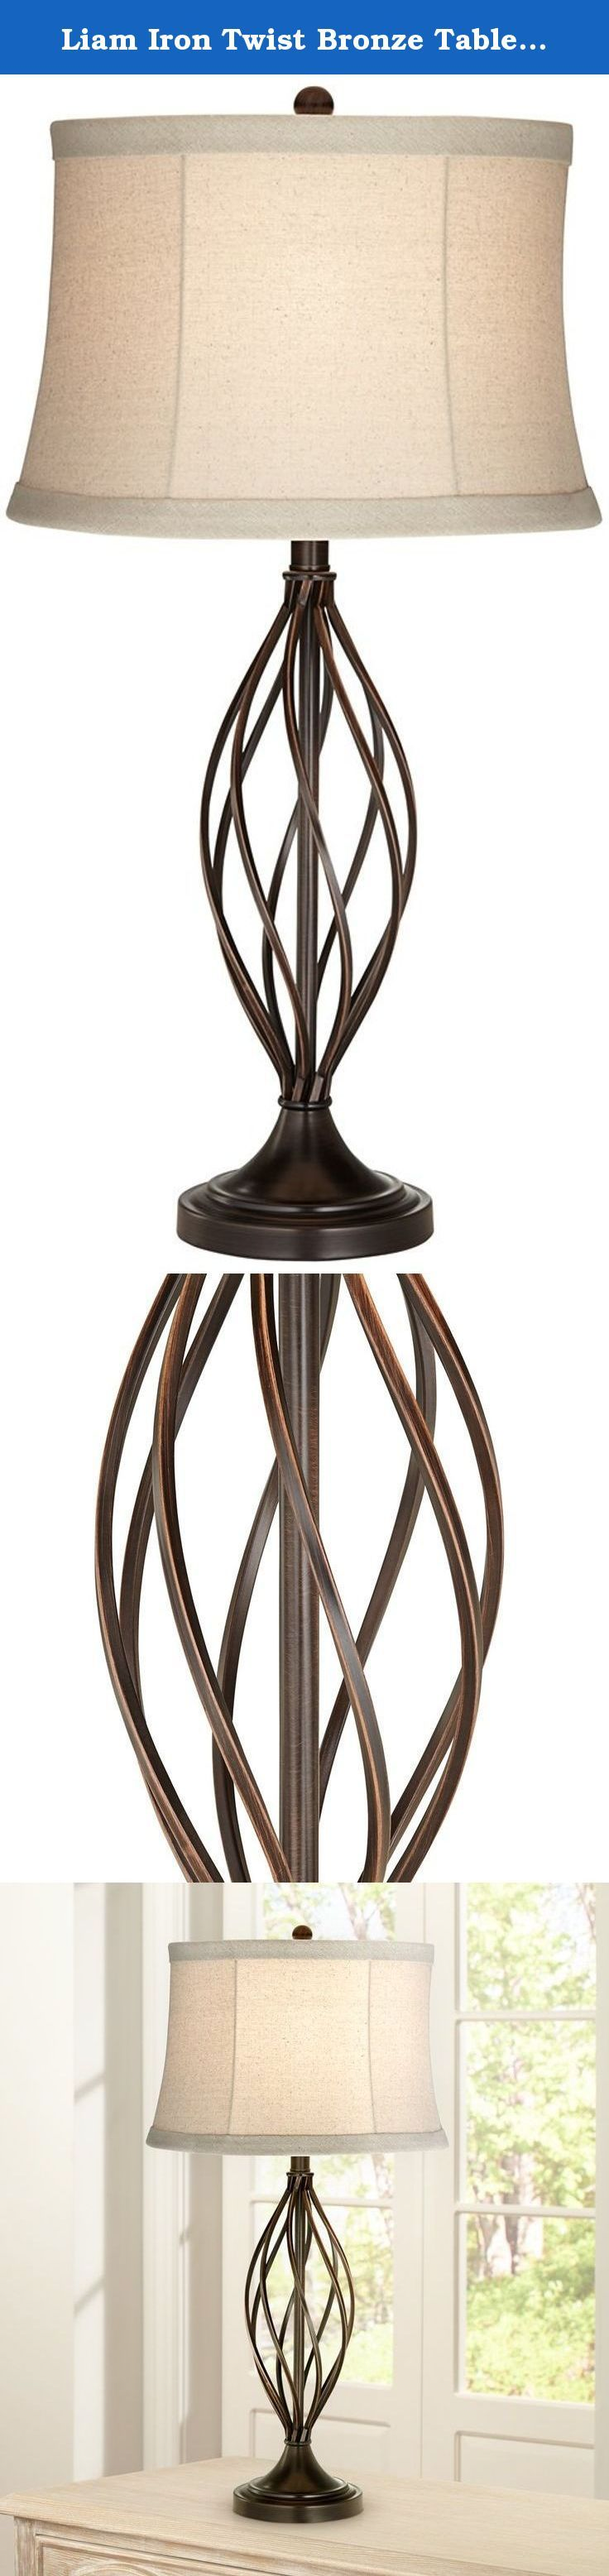 "Liam Iron Twist Bronze Table Lamp. A classic and timeless transitional table lamp style in a deep bronze finish. Constructed in iron metal material and topped with a tapered tan drum shade. Ideal for any room in your home. - Metal table lamp. - Open twist base design. - Bronze finish. - On-off switch. - Maximum 150 watt or equivalent bulb (not included). - Shade is 13"" across the top, 15"" across the bottom, 10"" on the slant. - 29 1/2"" high."